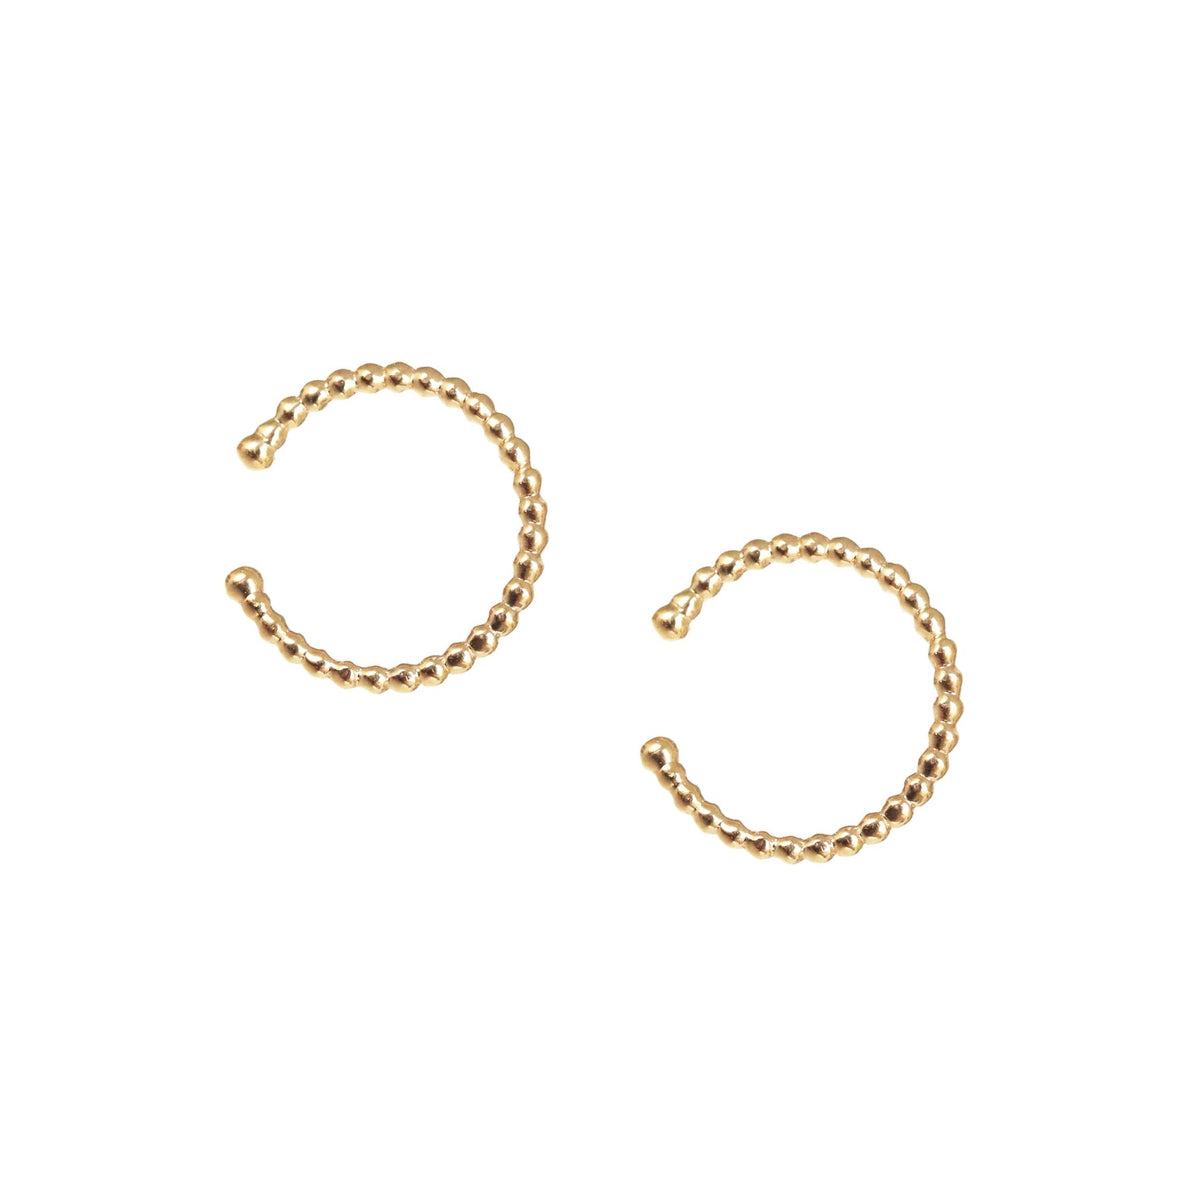 TINY BELIEVE SOLEIL EAR CUFFS - GOLD - SO PRETTY CARA COTTER